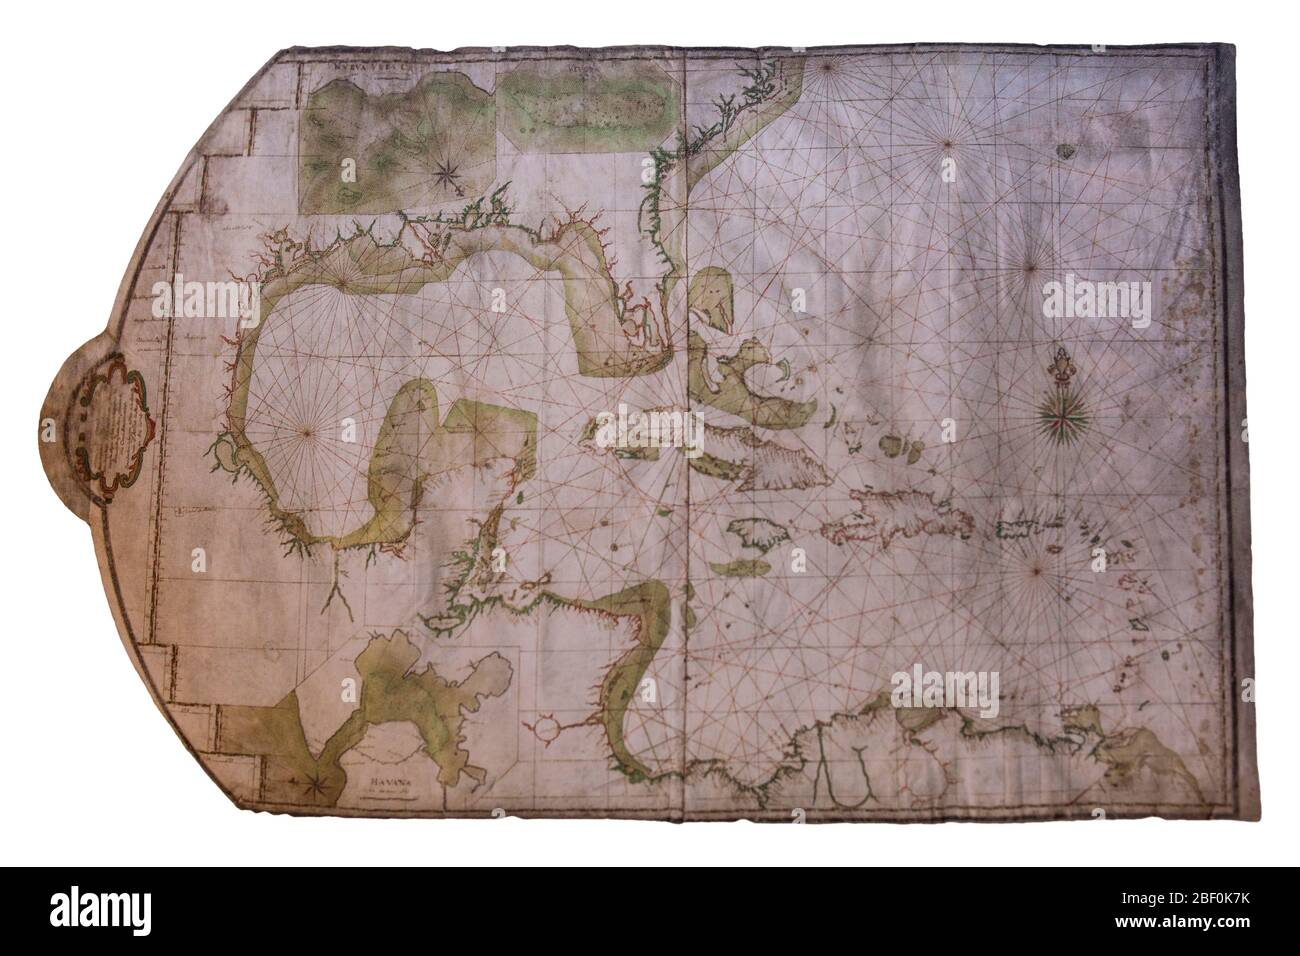 Nautical Chart of the Caribbean Sea and Gulf of Mexico, 1745. By Antonio Abreu y Mattos. Naval Museum of Madrid, Spain Stock Photo